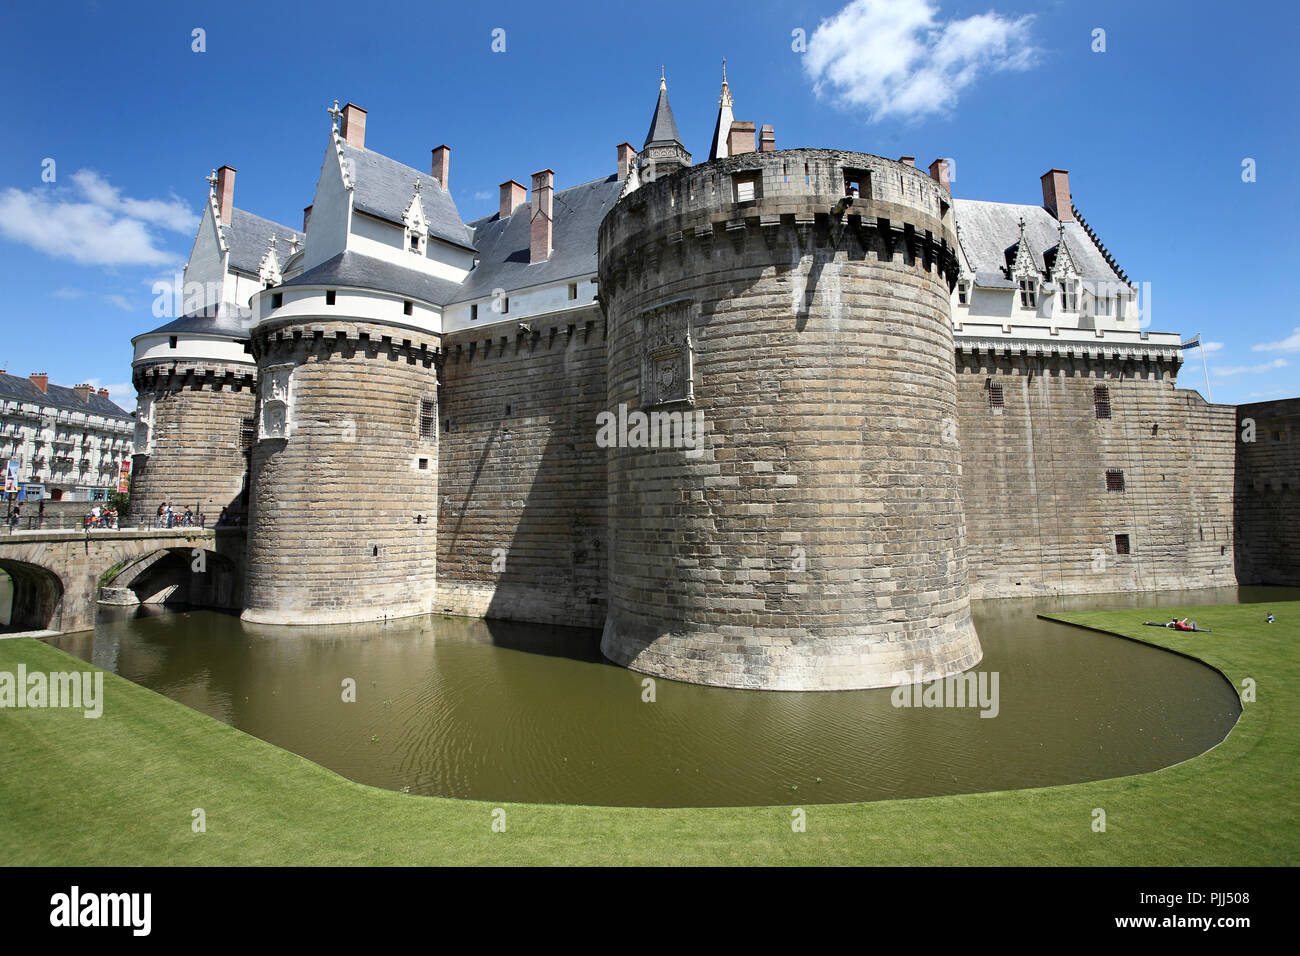 France, Medieval part of the Nantes castle in the city center, with its bridge, defense towers and water filled moats. - Stock Image